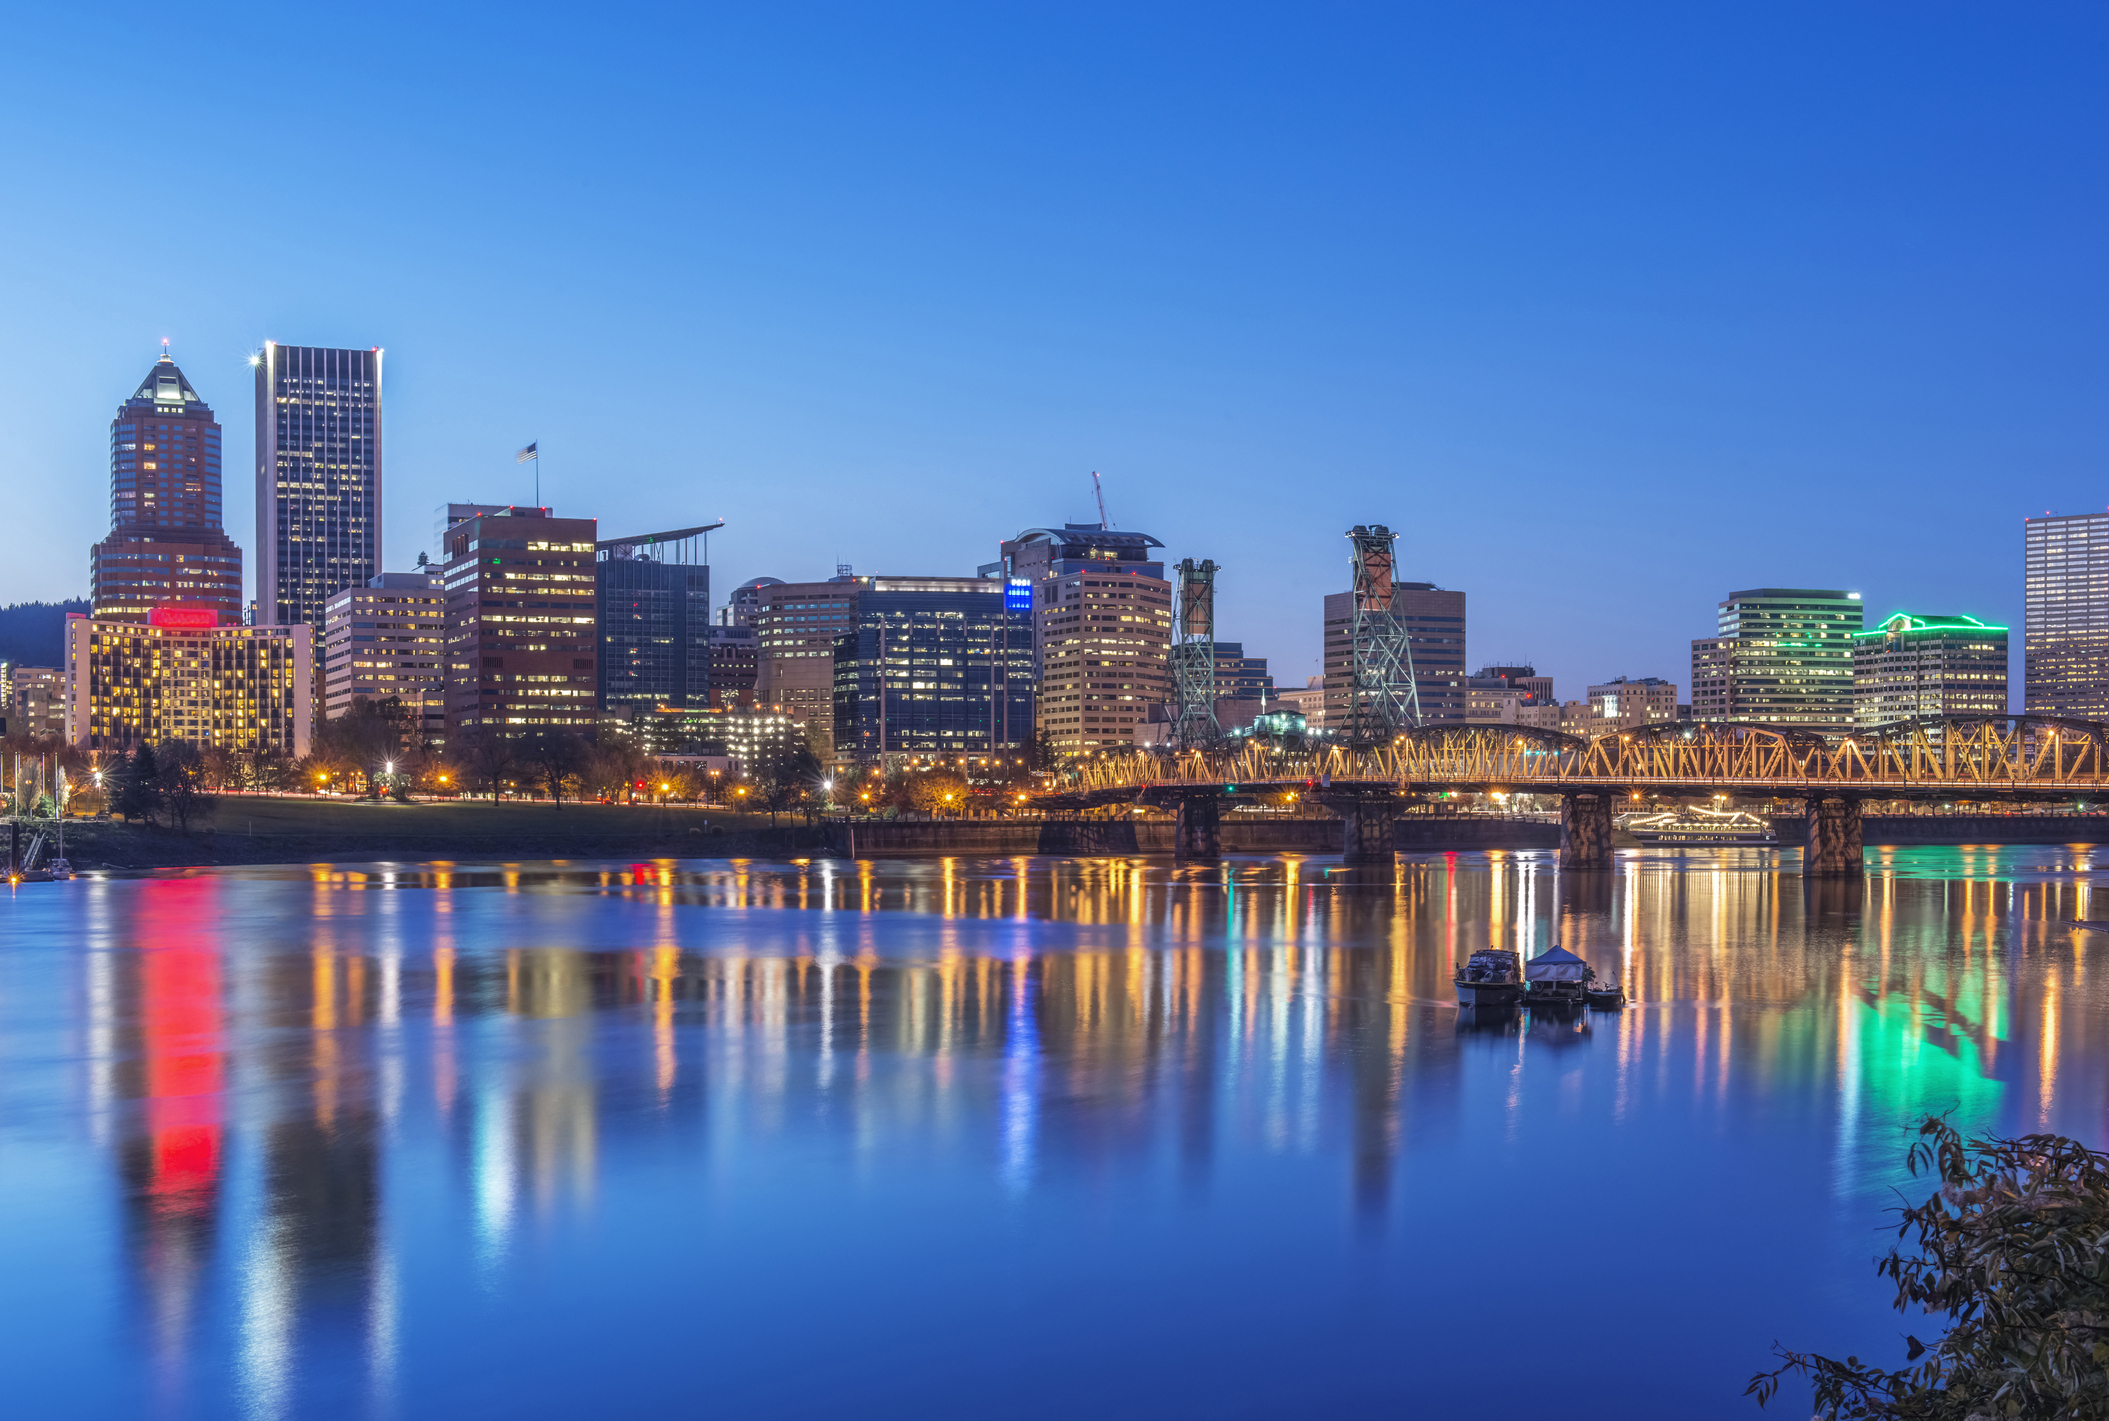 From food and drink to culture and design: Here's how Oregon's Portland will inspire you